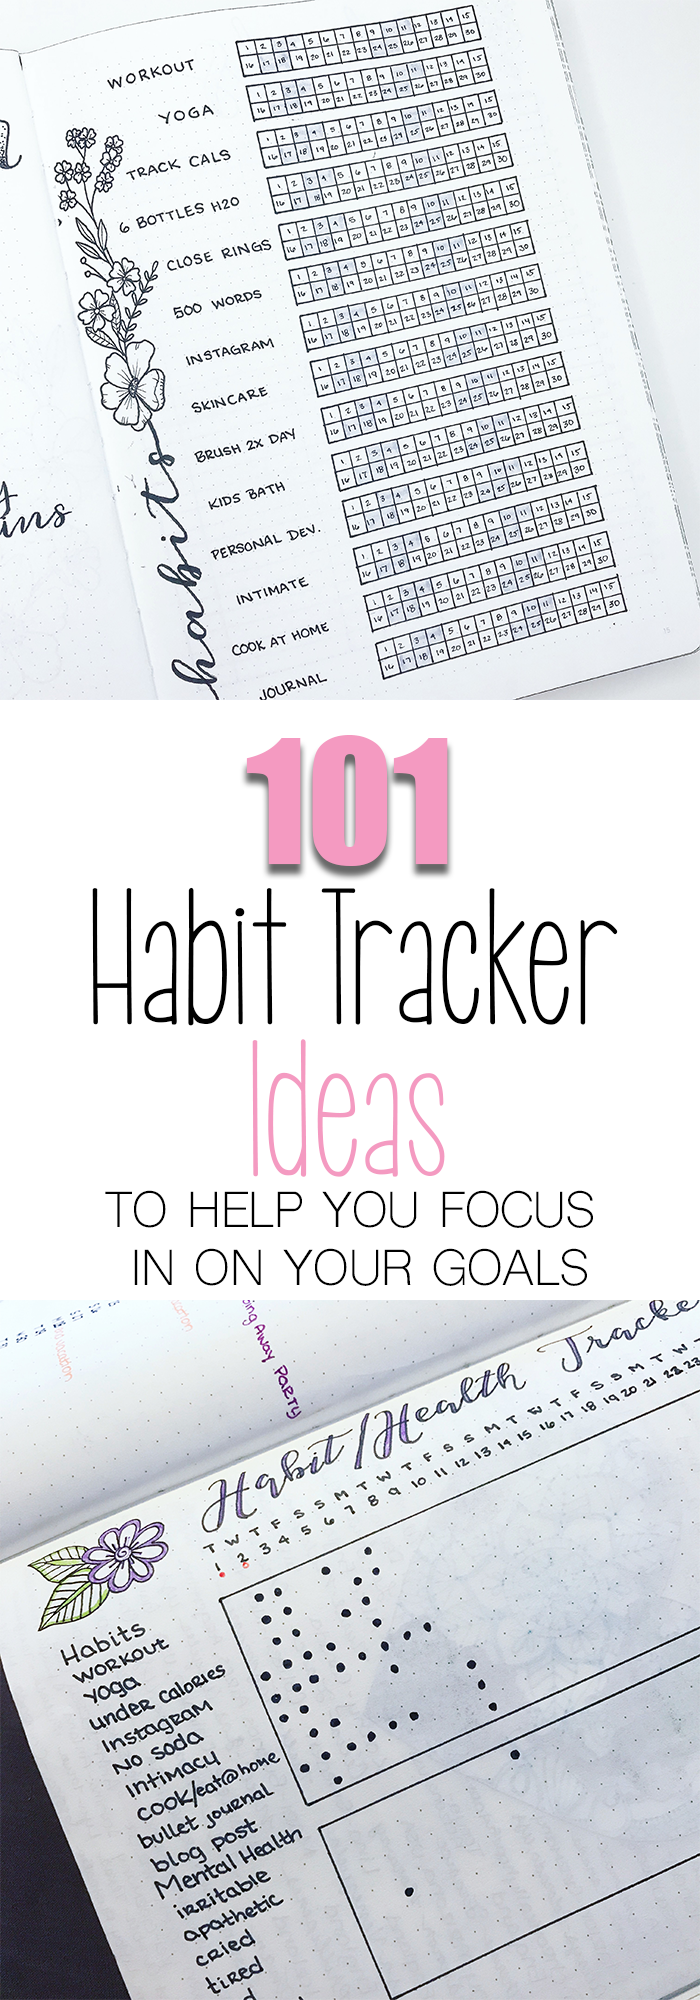 101 Habit Tracker Ideas for Your Bullet Journal I have made it easy to find habits relevant to your life and goals by categorizing each list of habits